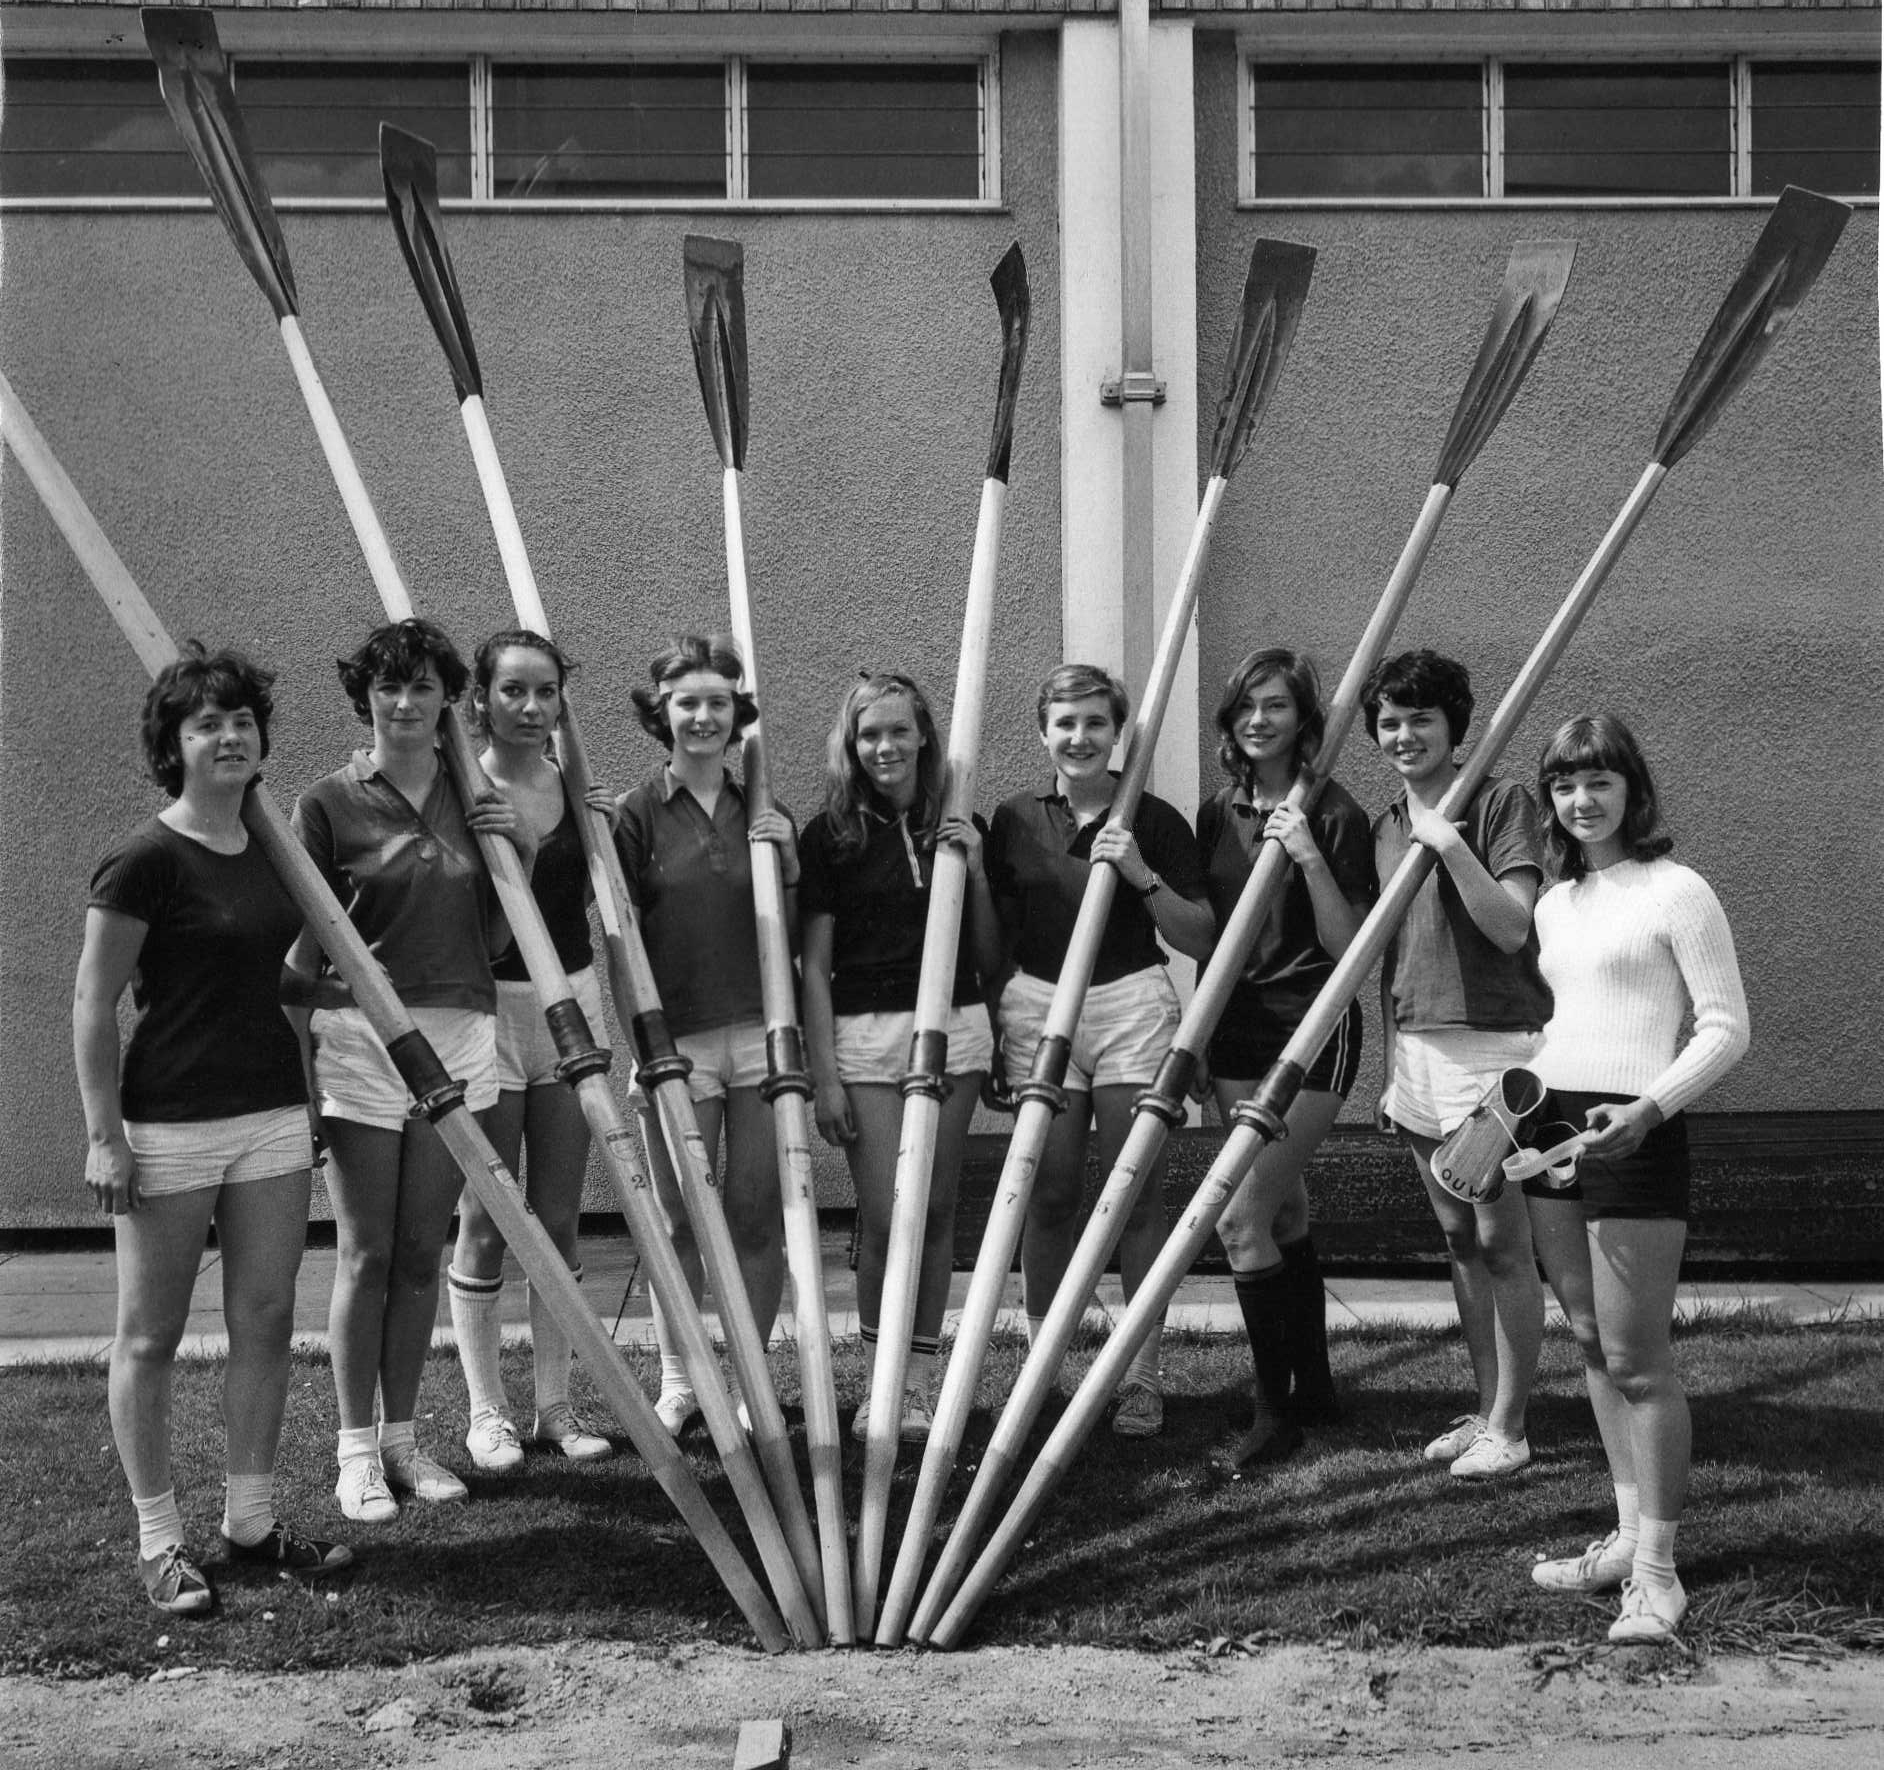 St Hilda's boat crew of 1969 was the first women's boat crew to qualify for Summer Eights